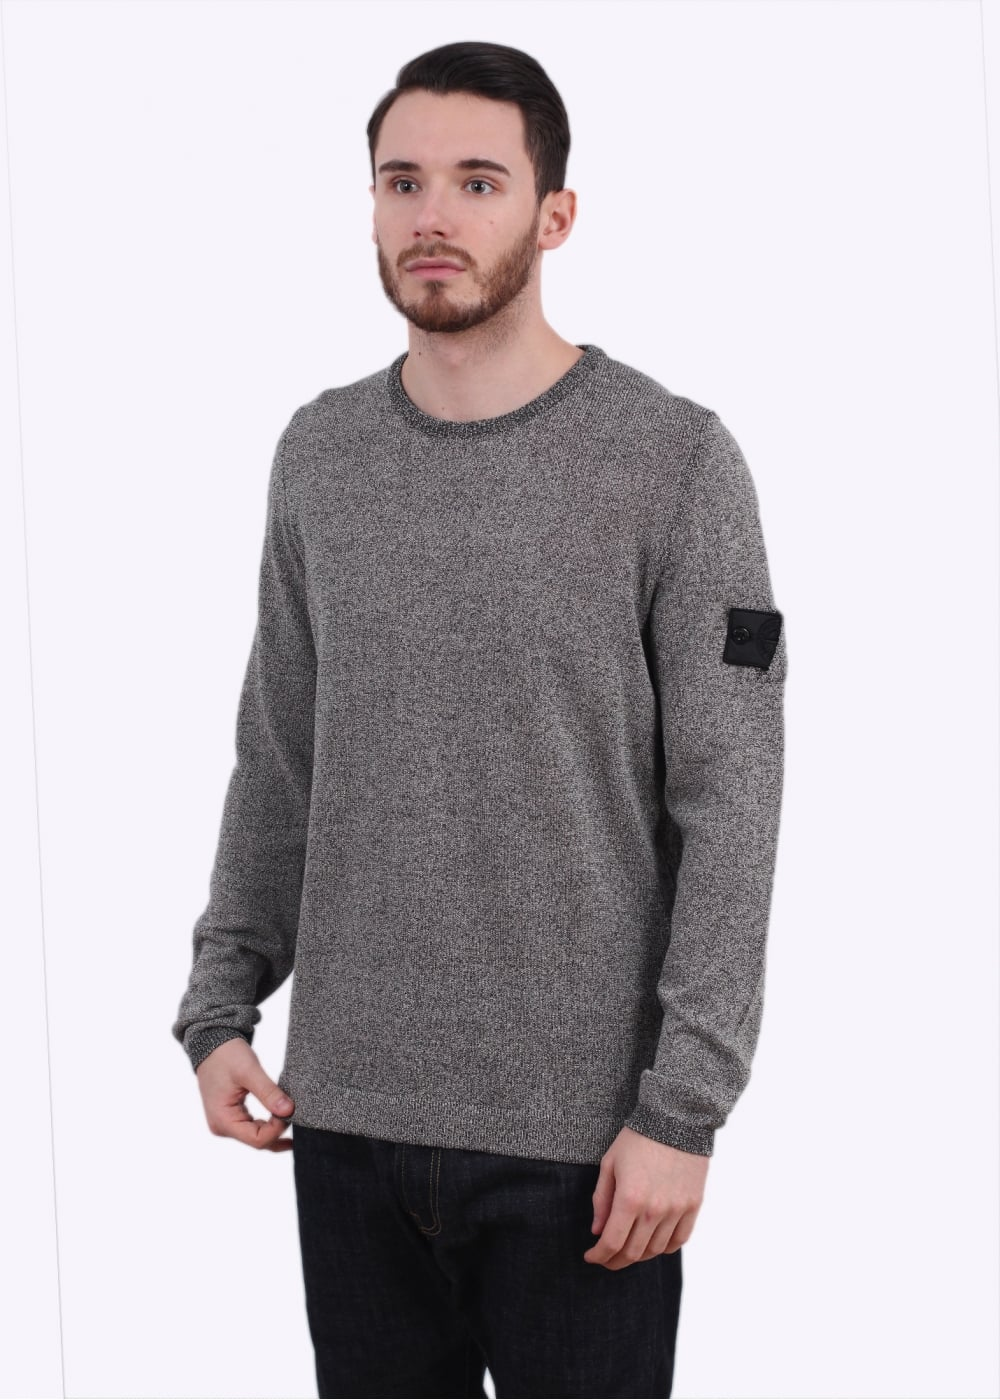 Stone Island Shadow Project Knit Sweater Black Triads Mens From